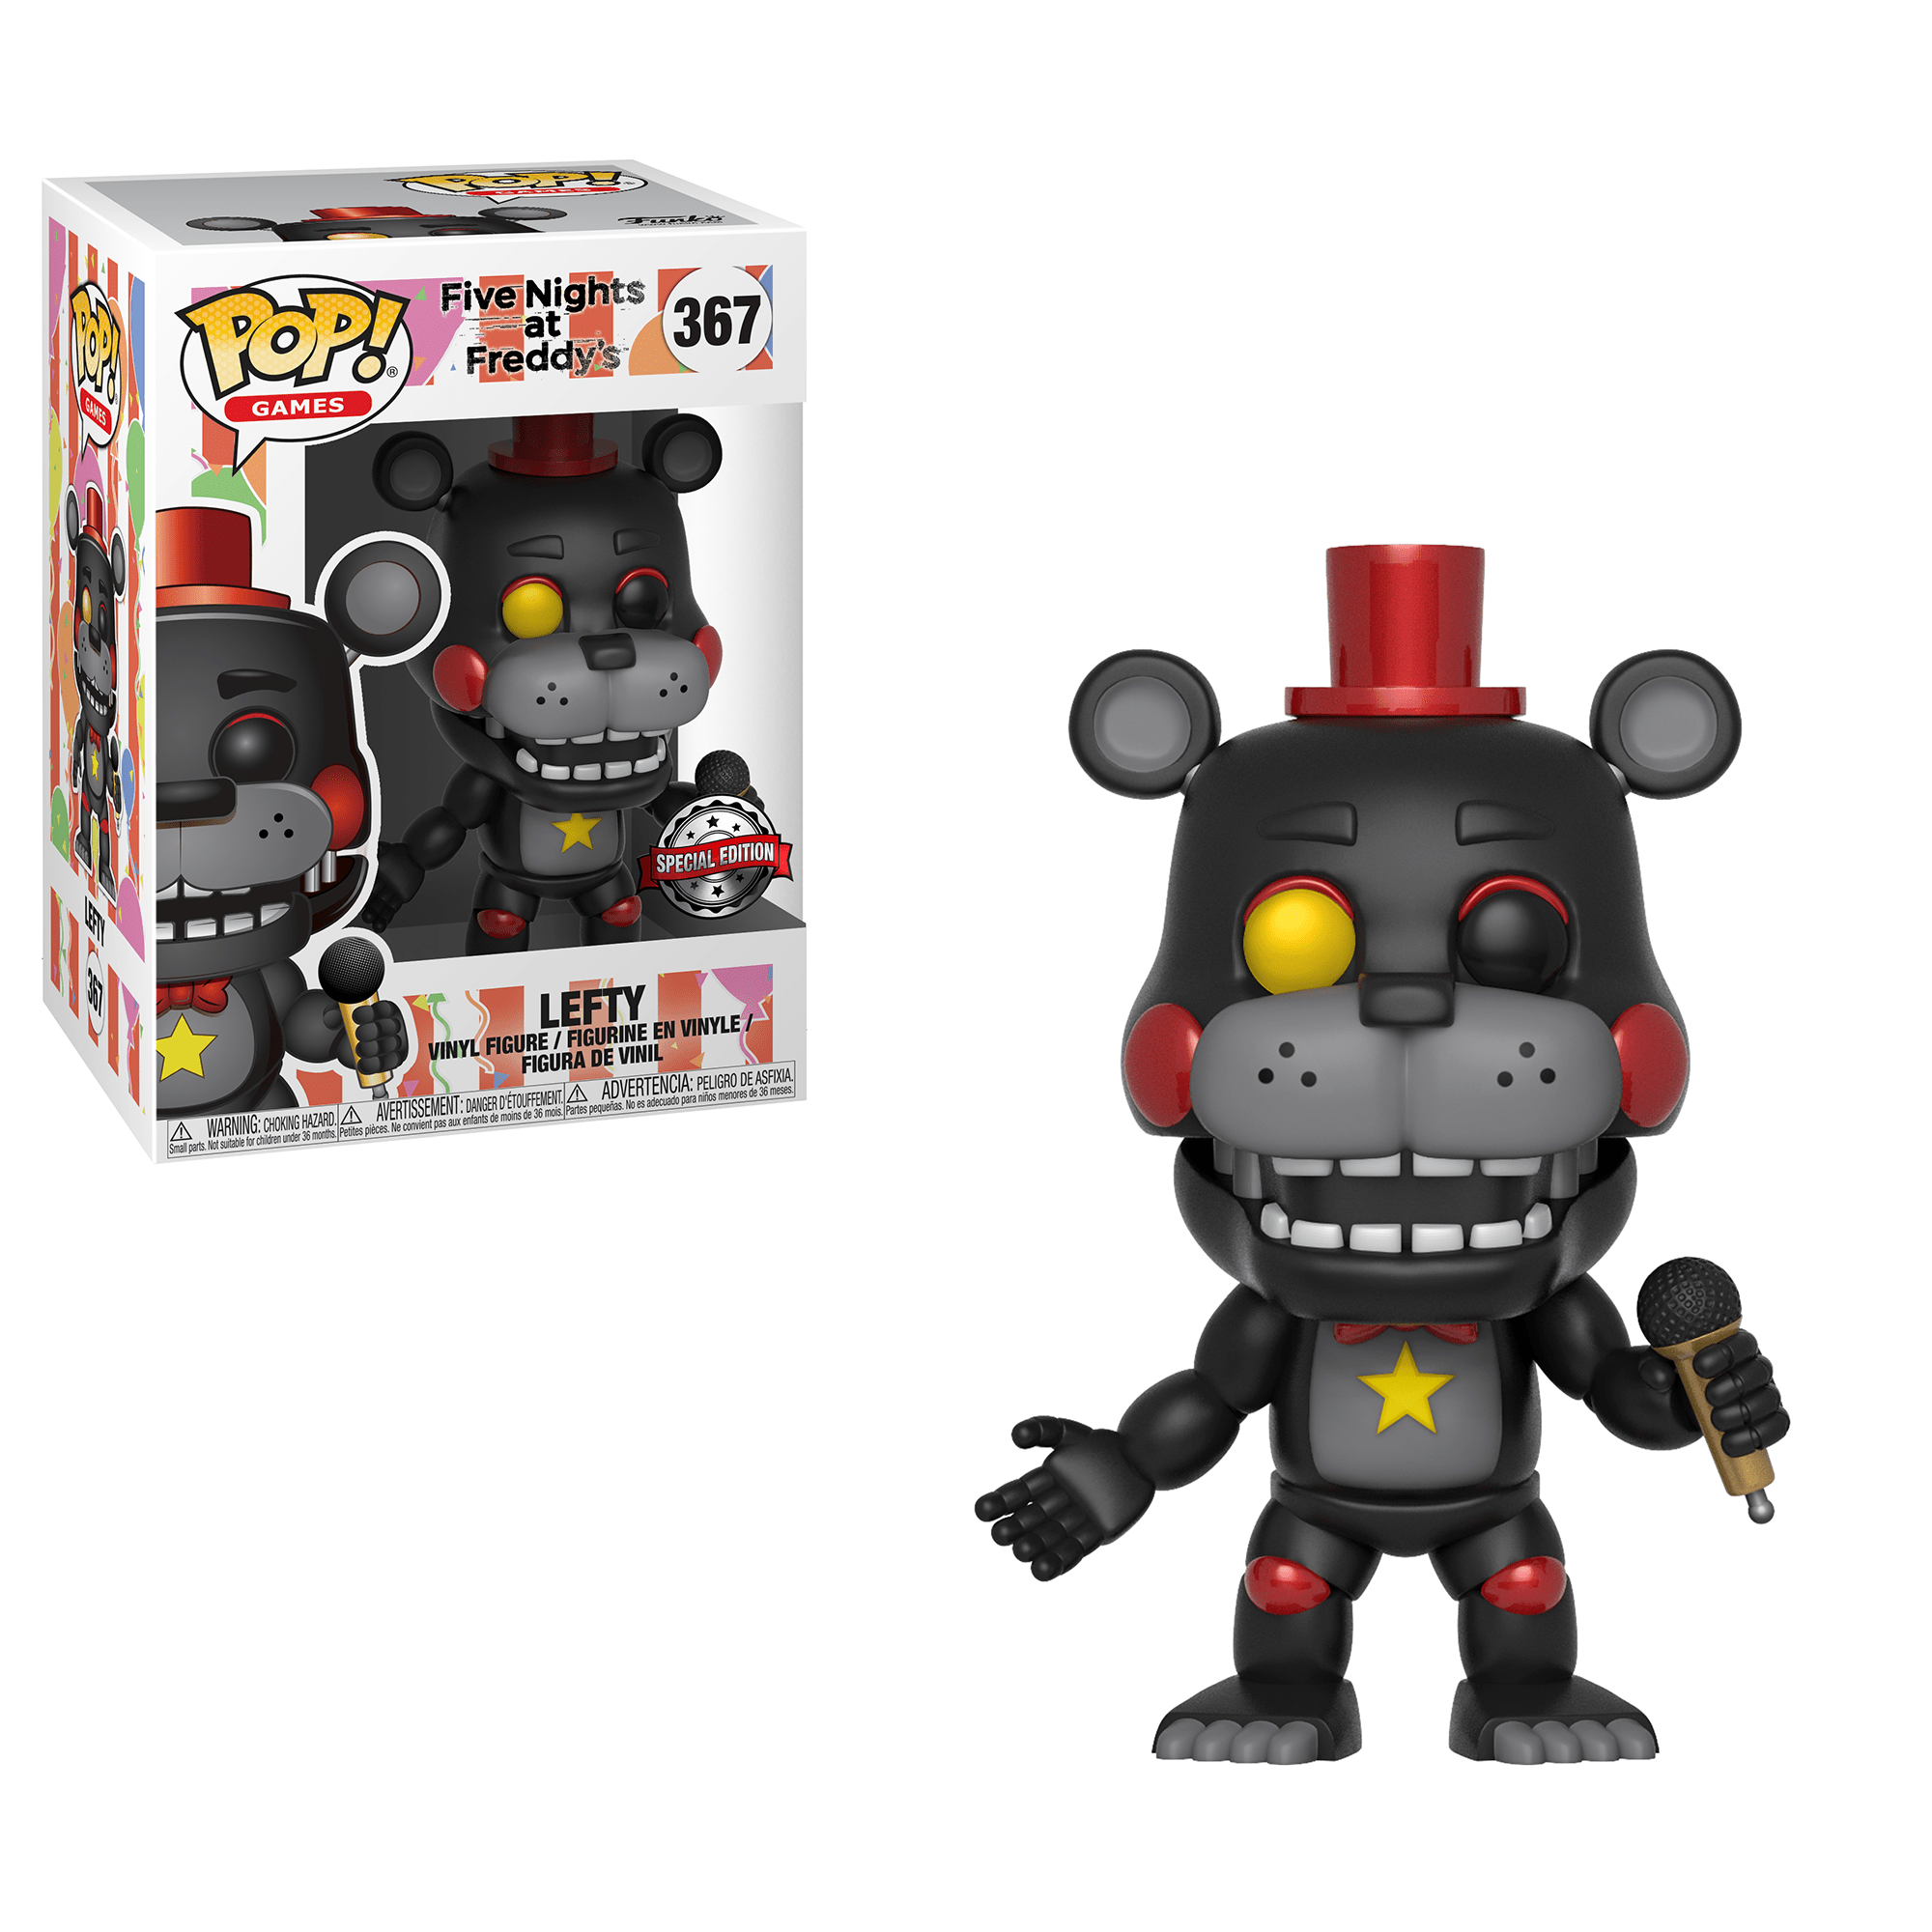 Lefty | Catalog | Funko - Everyone is a fan of something